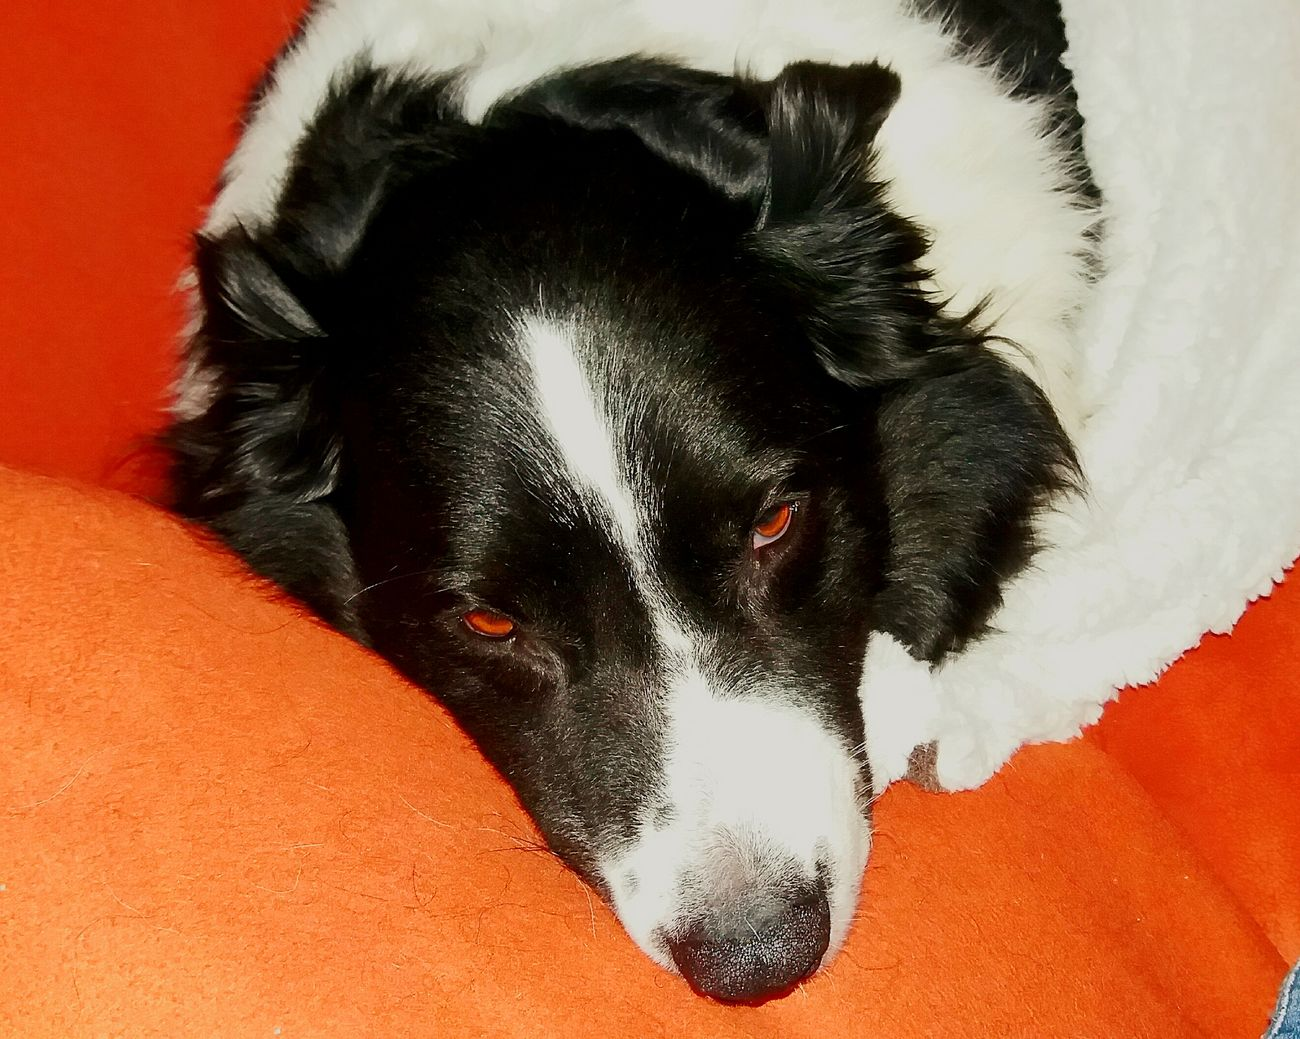 Animal Themes Pets Domestic Animals One Animal Dog Indoors  Close-up Relaxation Mammal Resting Animal Head  Pet Blackandwhite Bordercollie  Australienshepard Border Collie Hütehund Dog Love Lazy Müde Sein Todesblick Red Zoology No People Animal